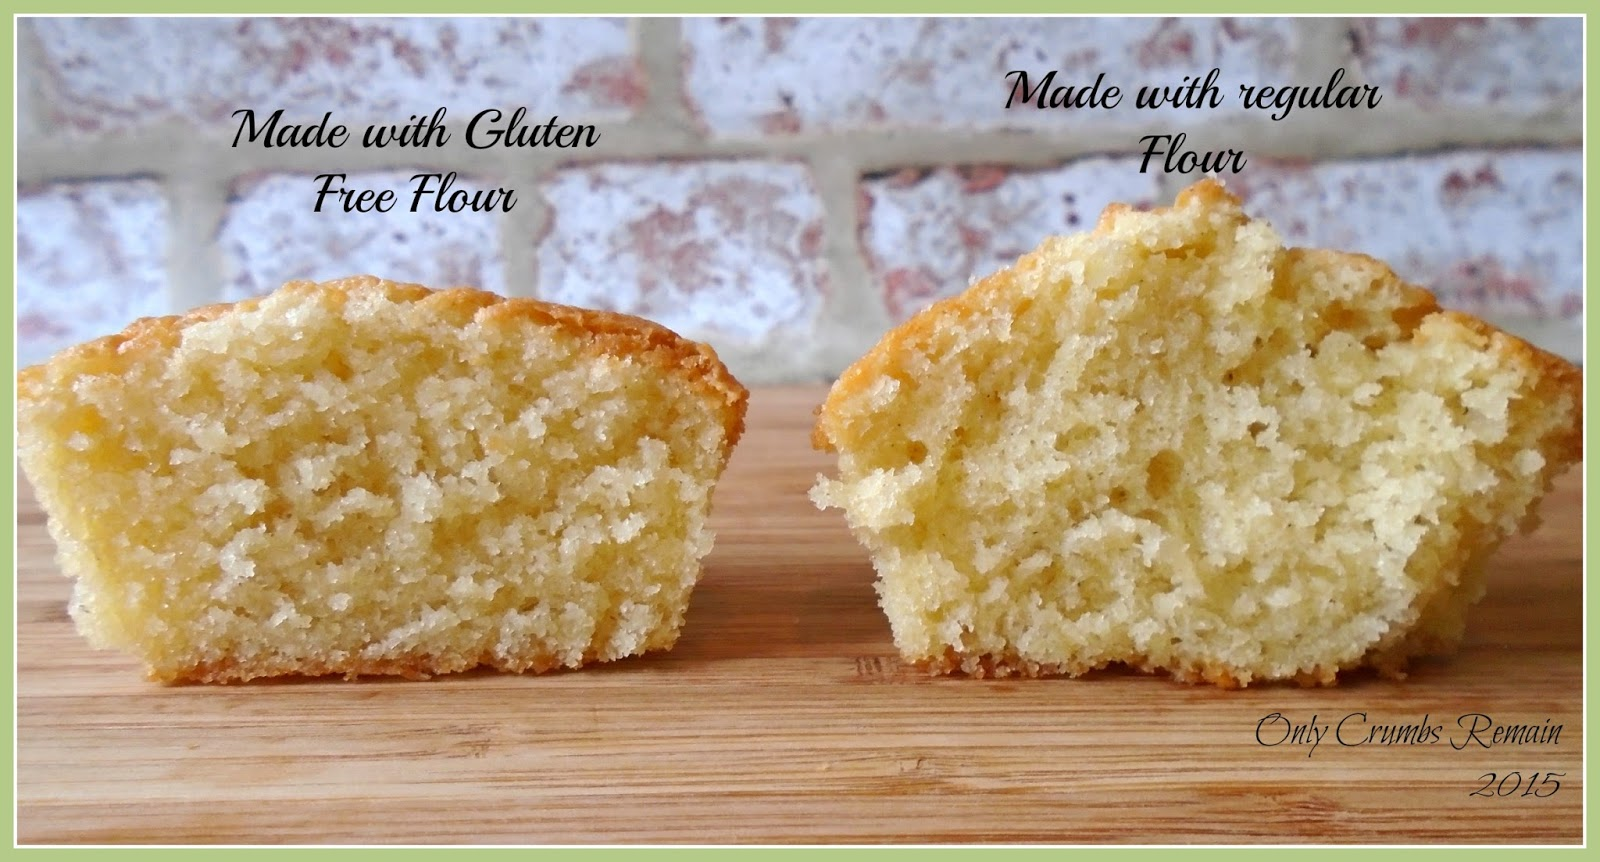 Sponge Cake Vs Regular Cake